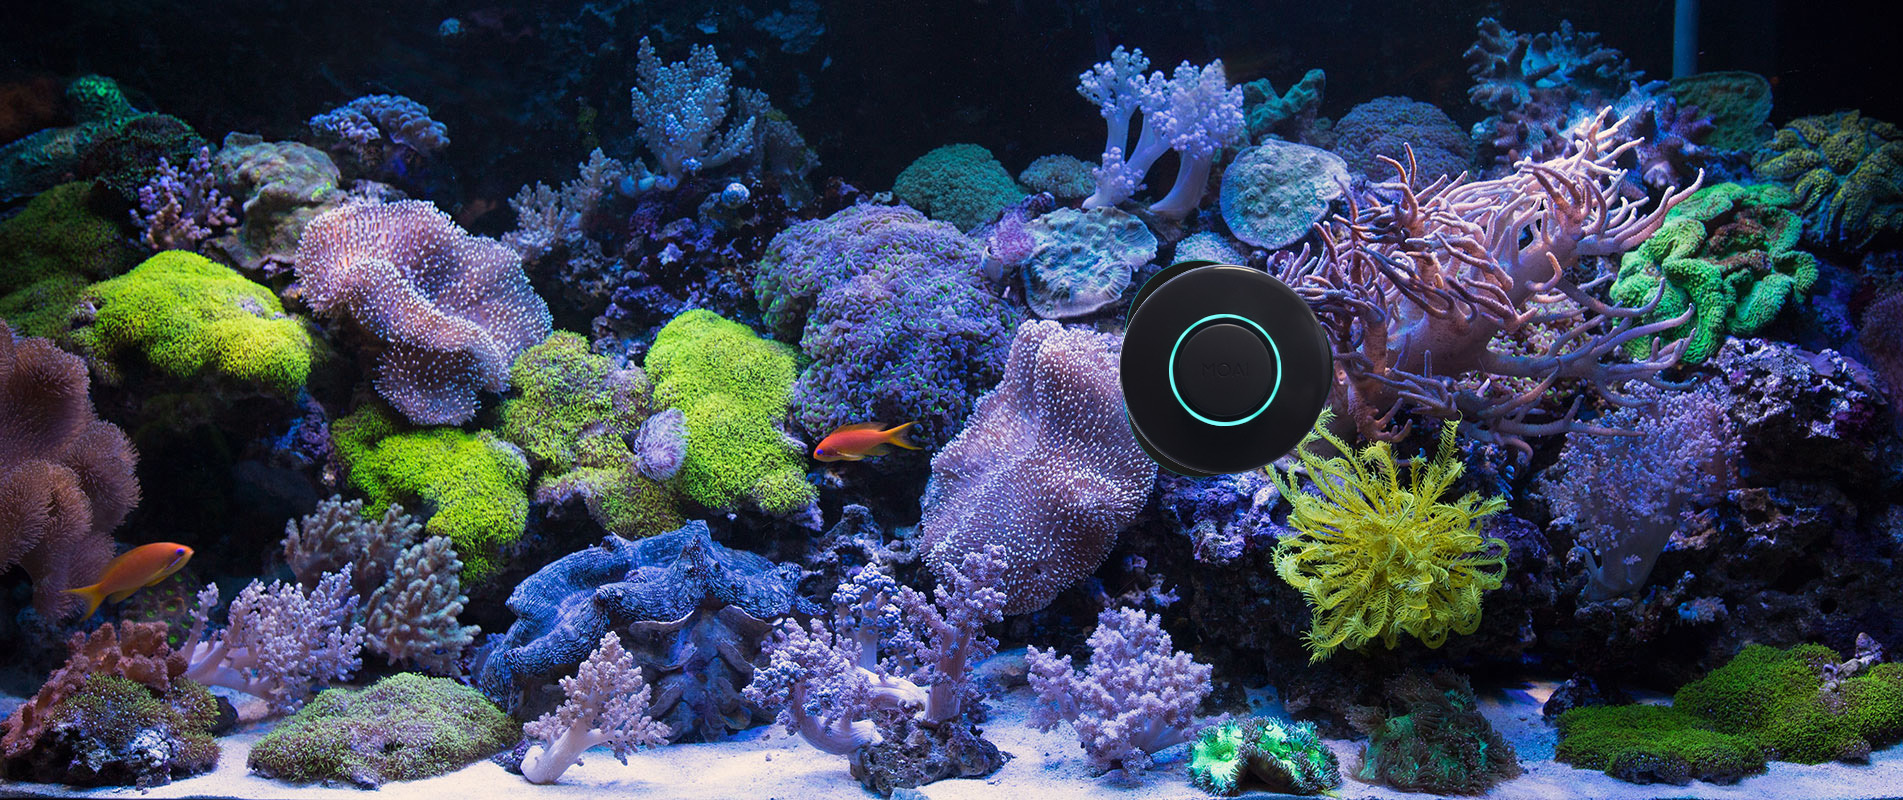 moai smart robot for your aquarium